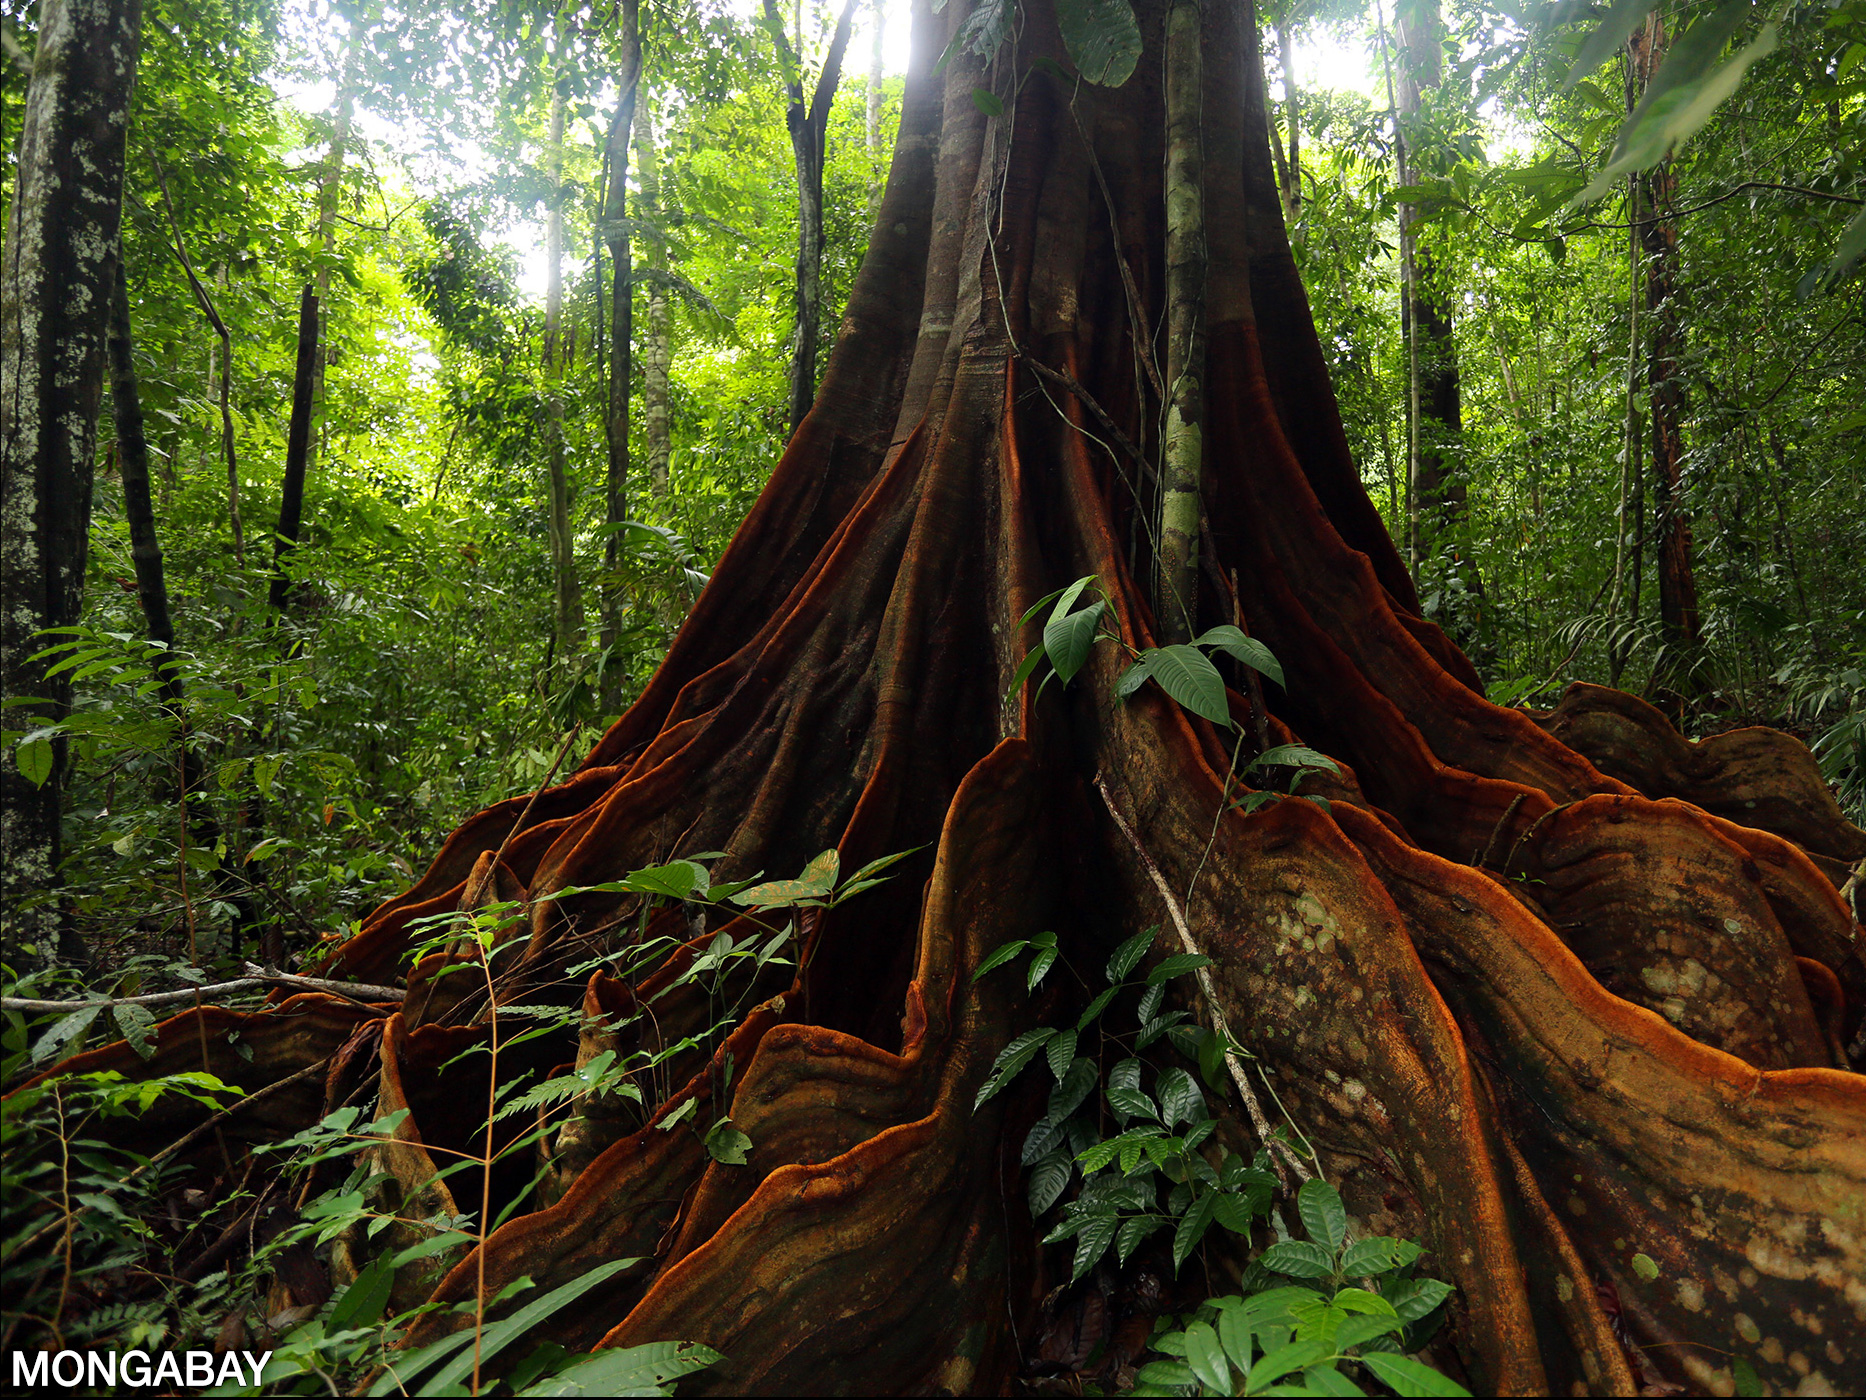 The warm, wet climate encourages lots of large green plants to grow. The Ground Layer Of The Rainforest